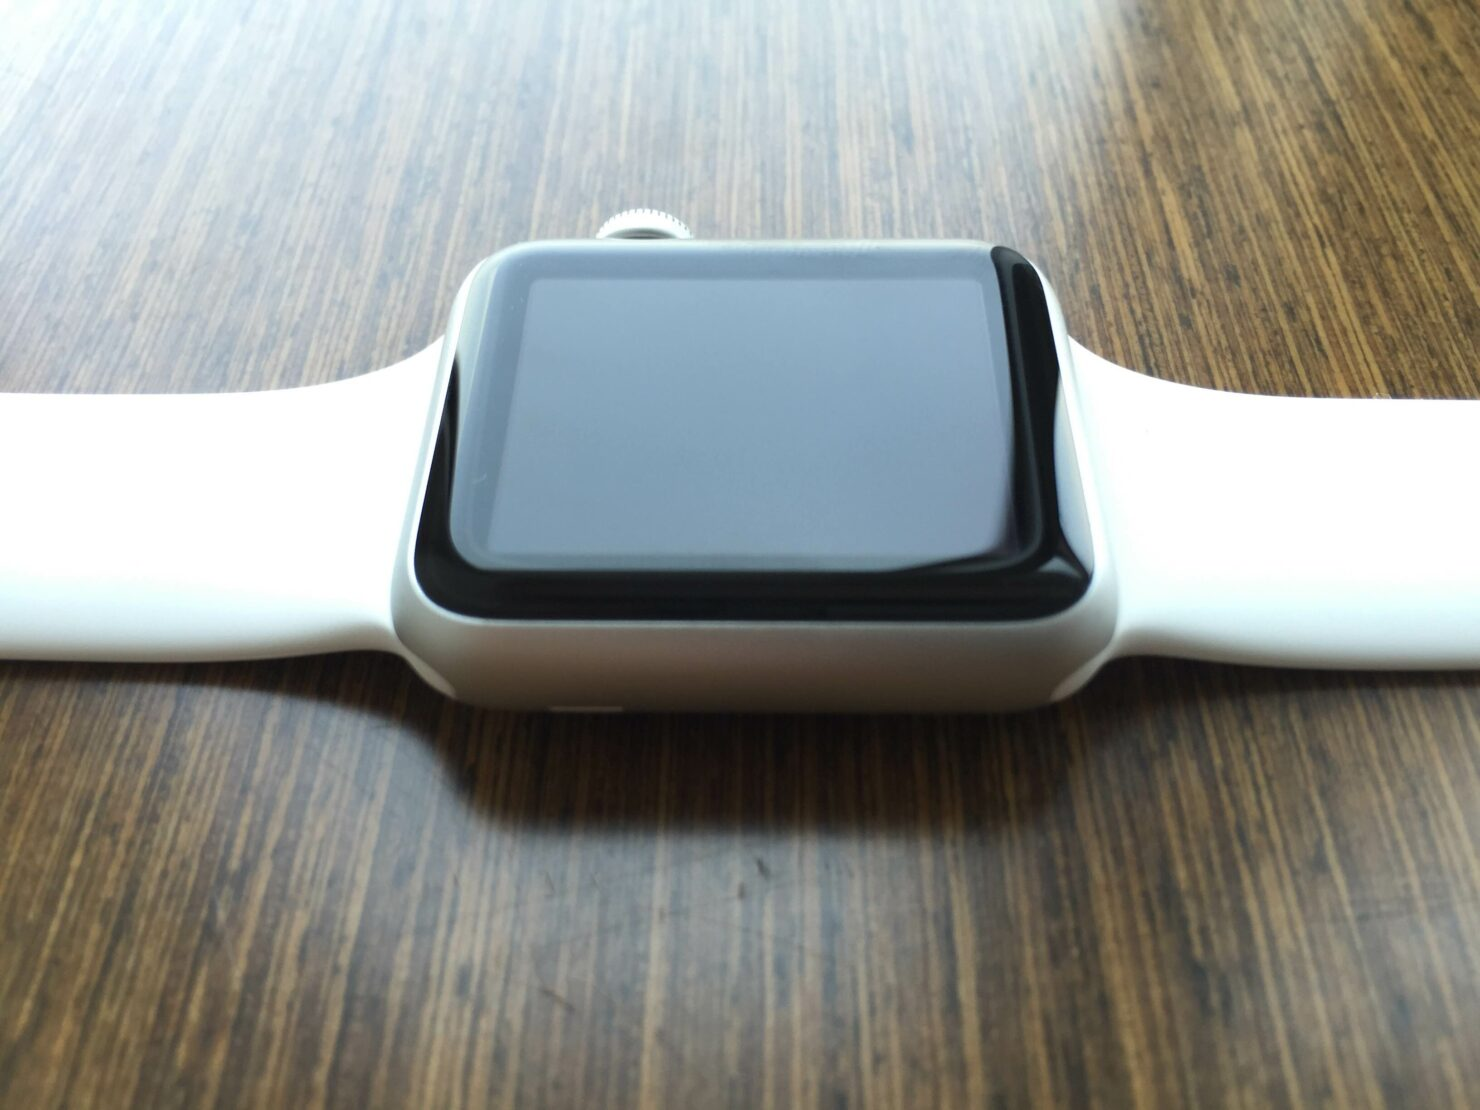 apple-watch-unboxing-img_3899